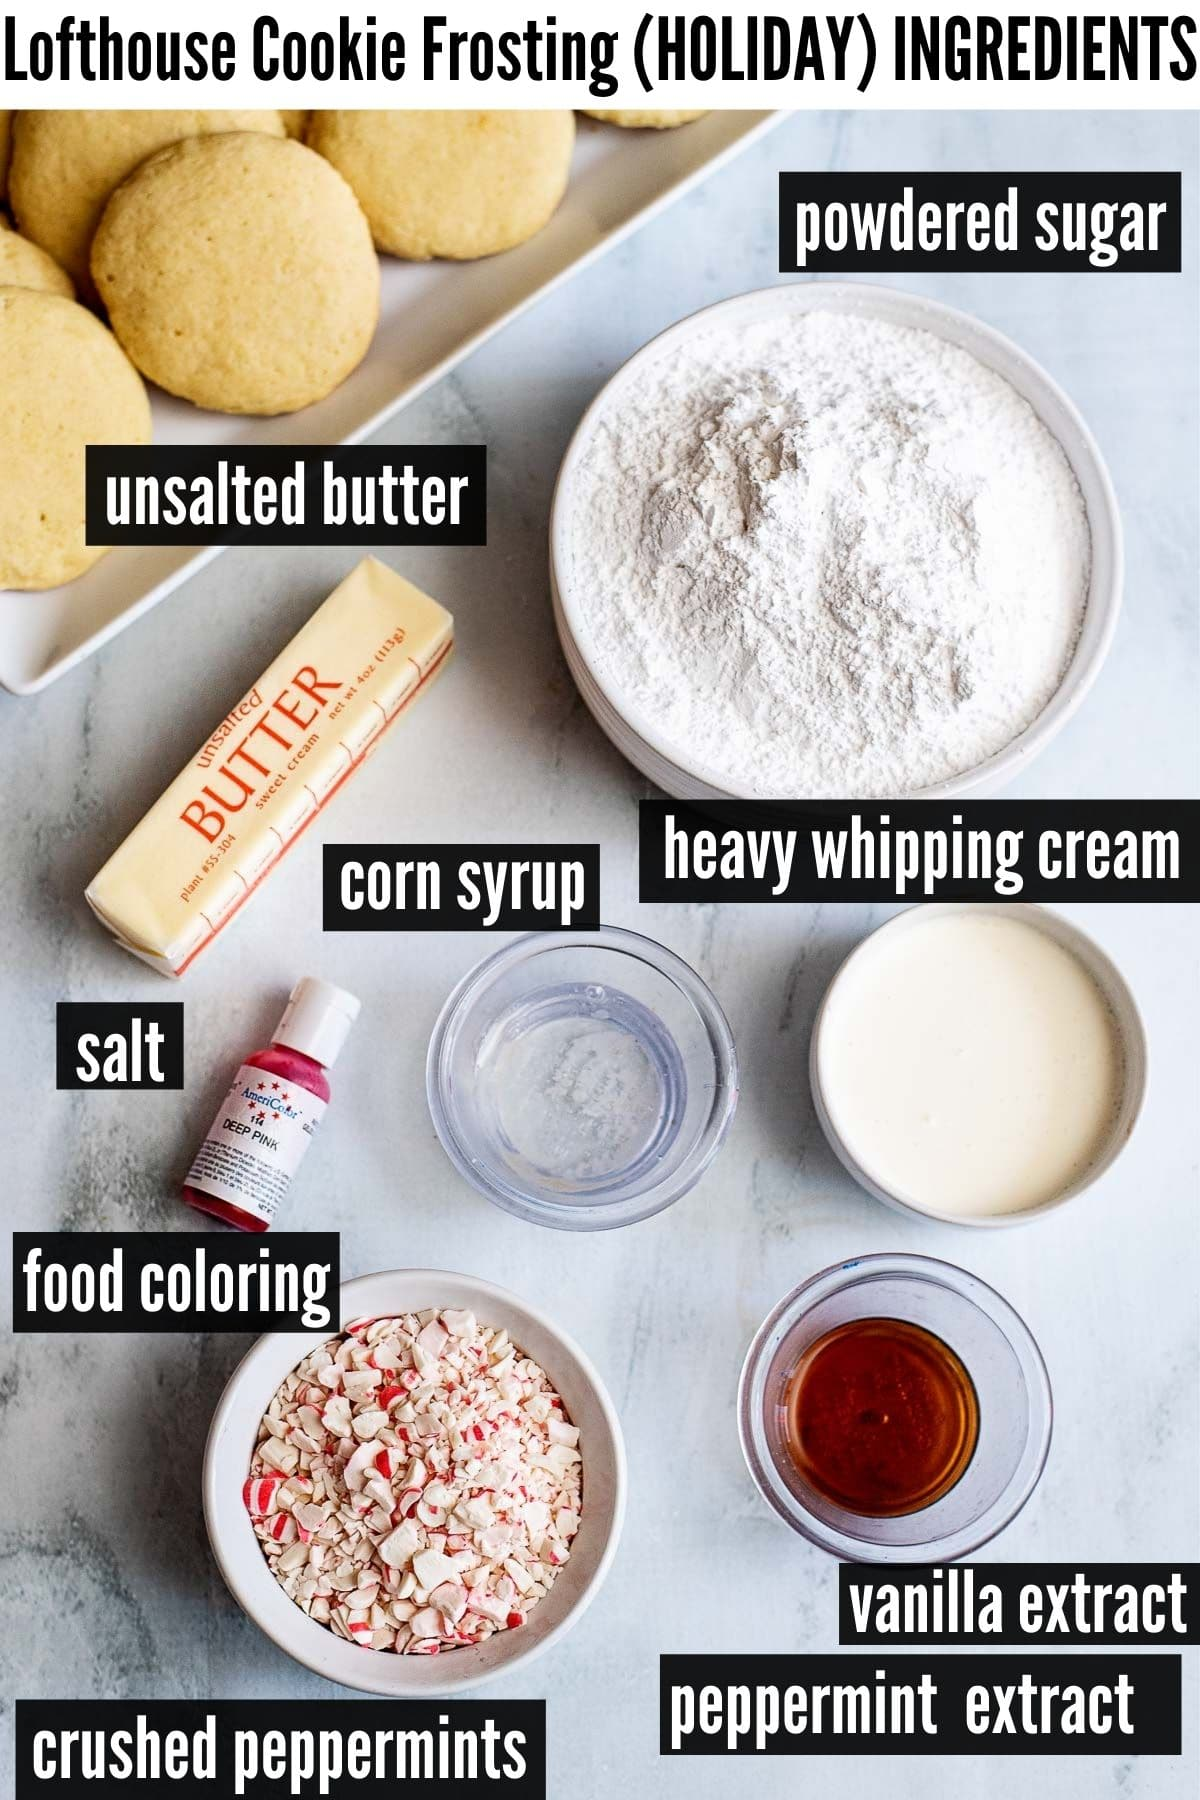 lofthouse holiday frosting ingredients